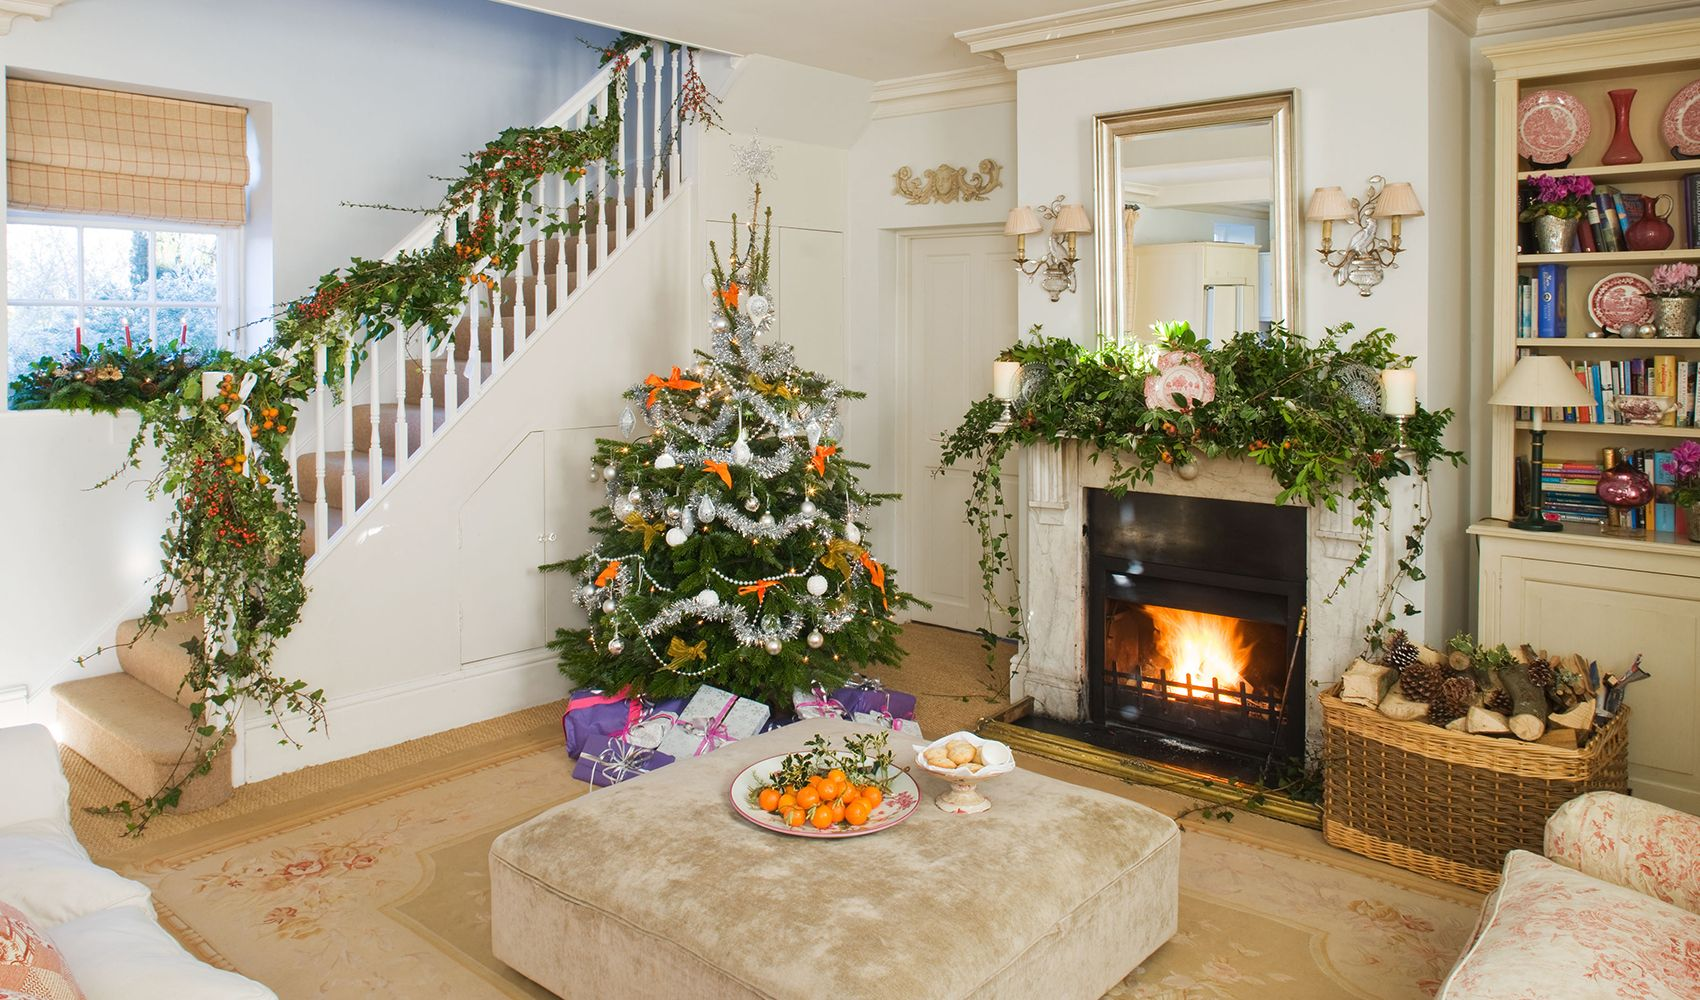 Christmas at Bruern is special & rooms are beautifully decorated